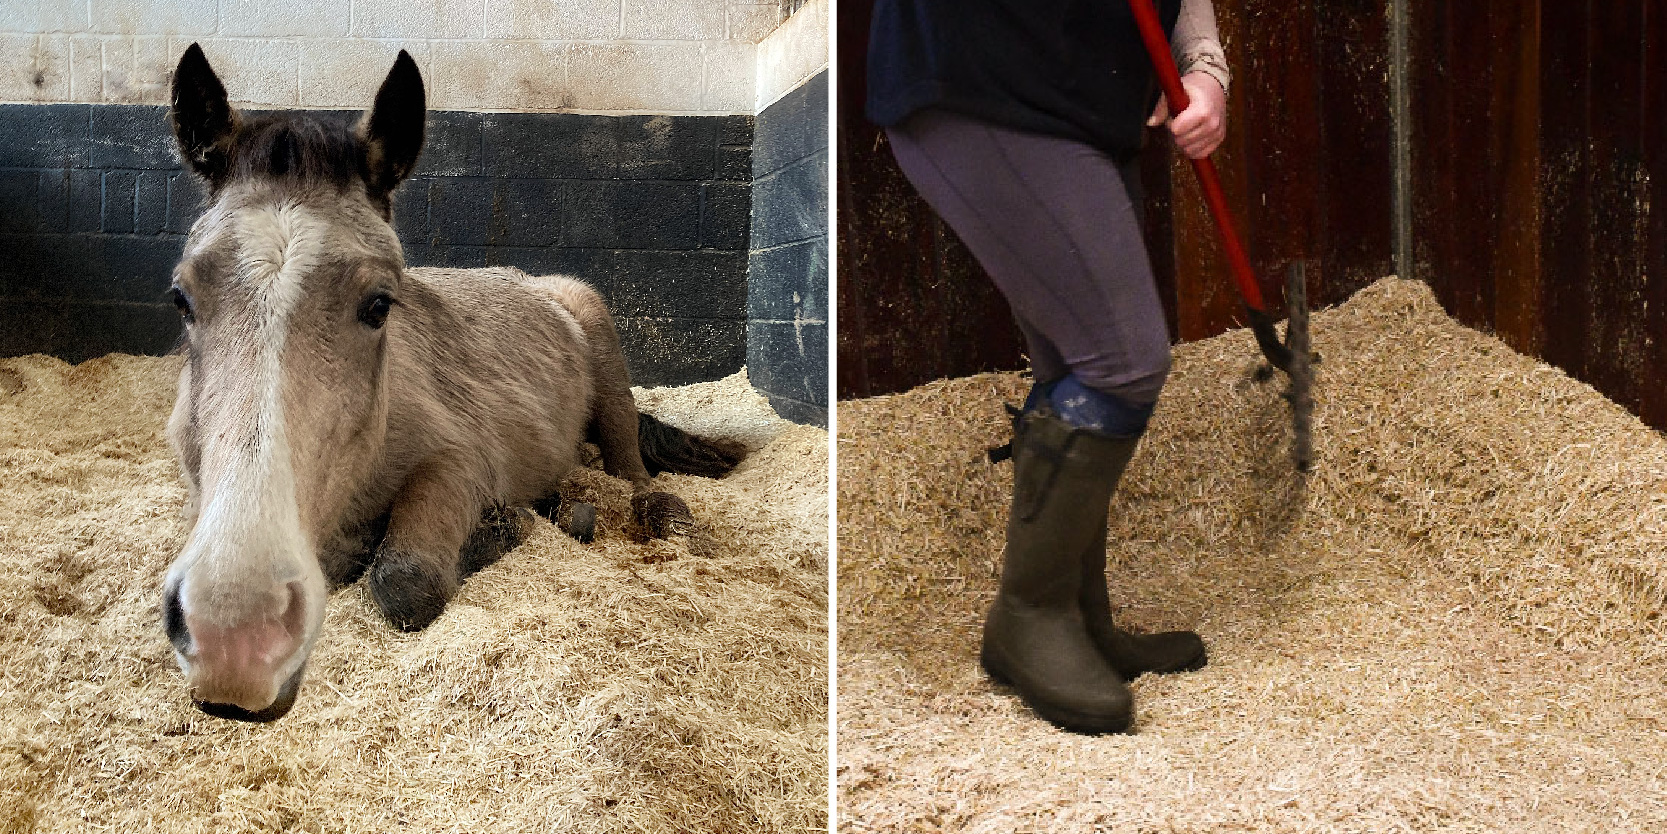 Miscanthus is comfortably the best bedding choice for horse owners who want clean and highly absorbent bedding